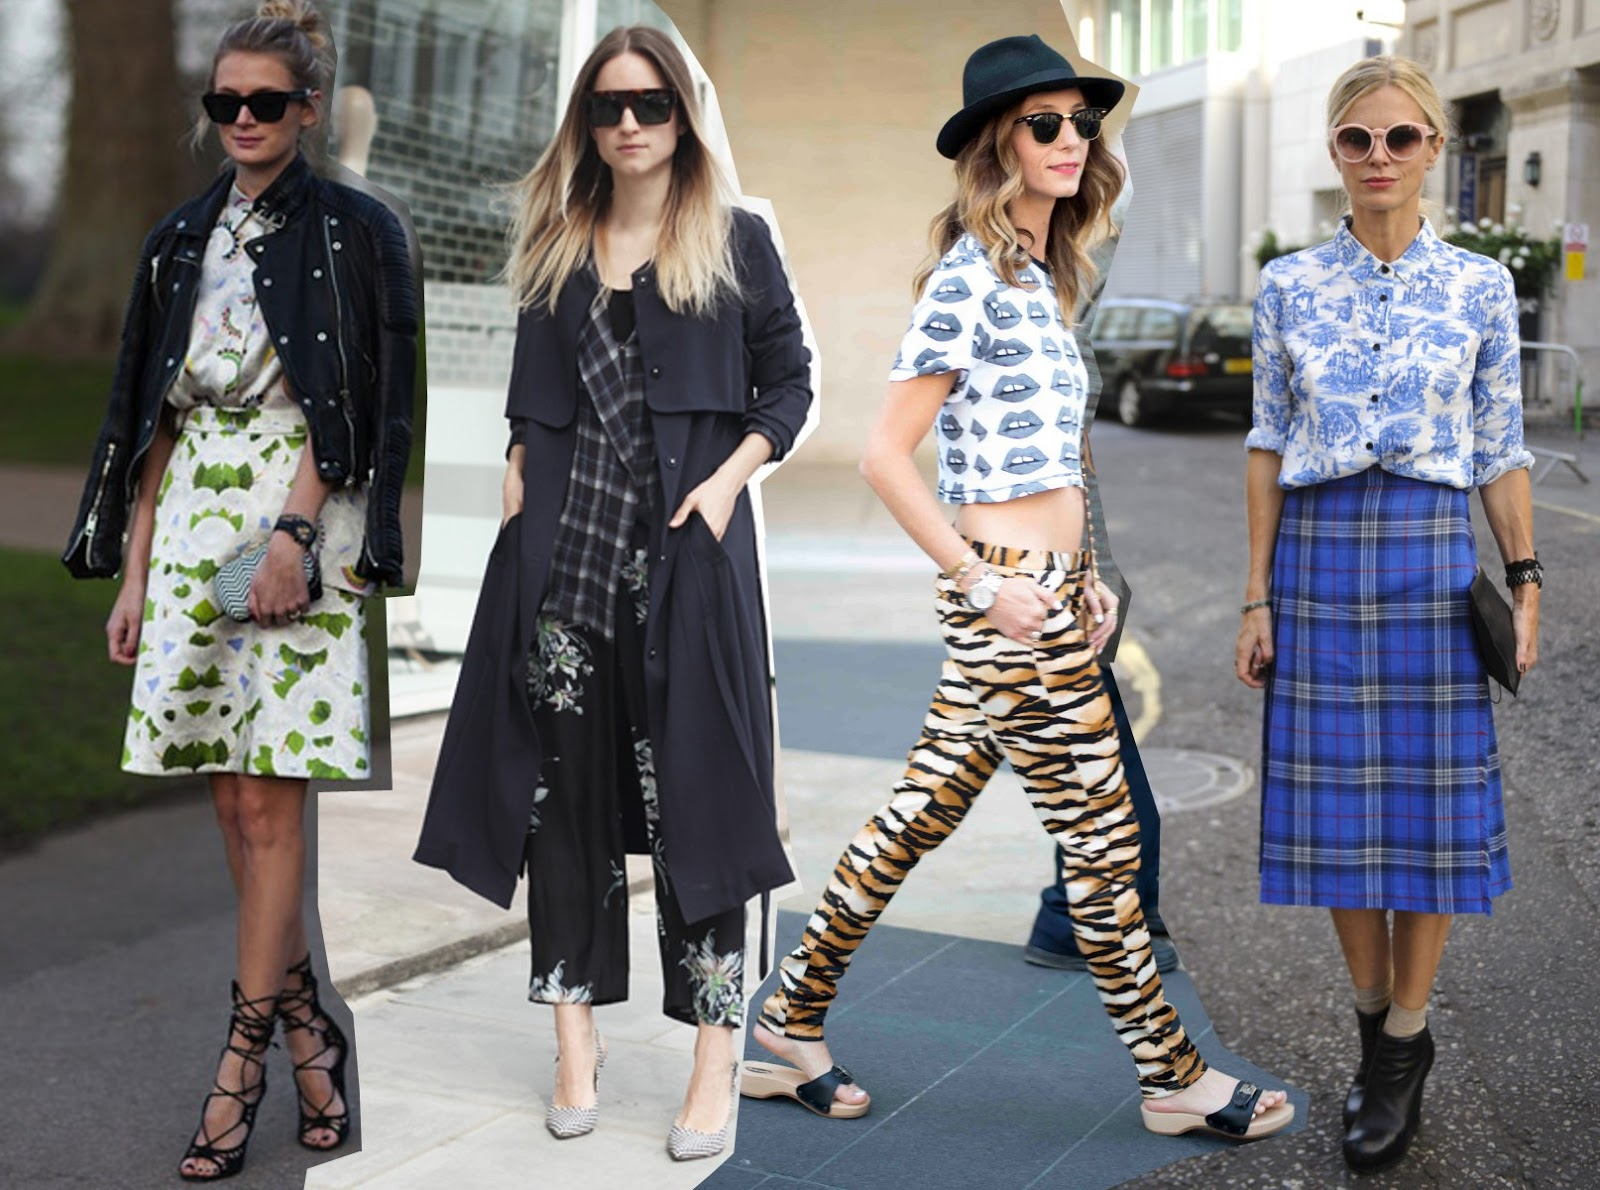 How To Wear The Fashion Trend Clashing Prints Streetstyle